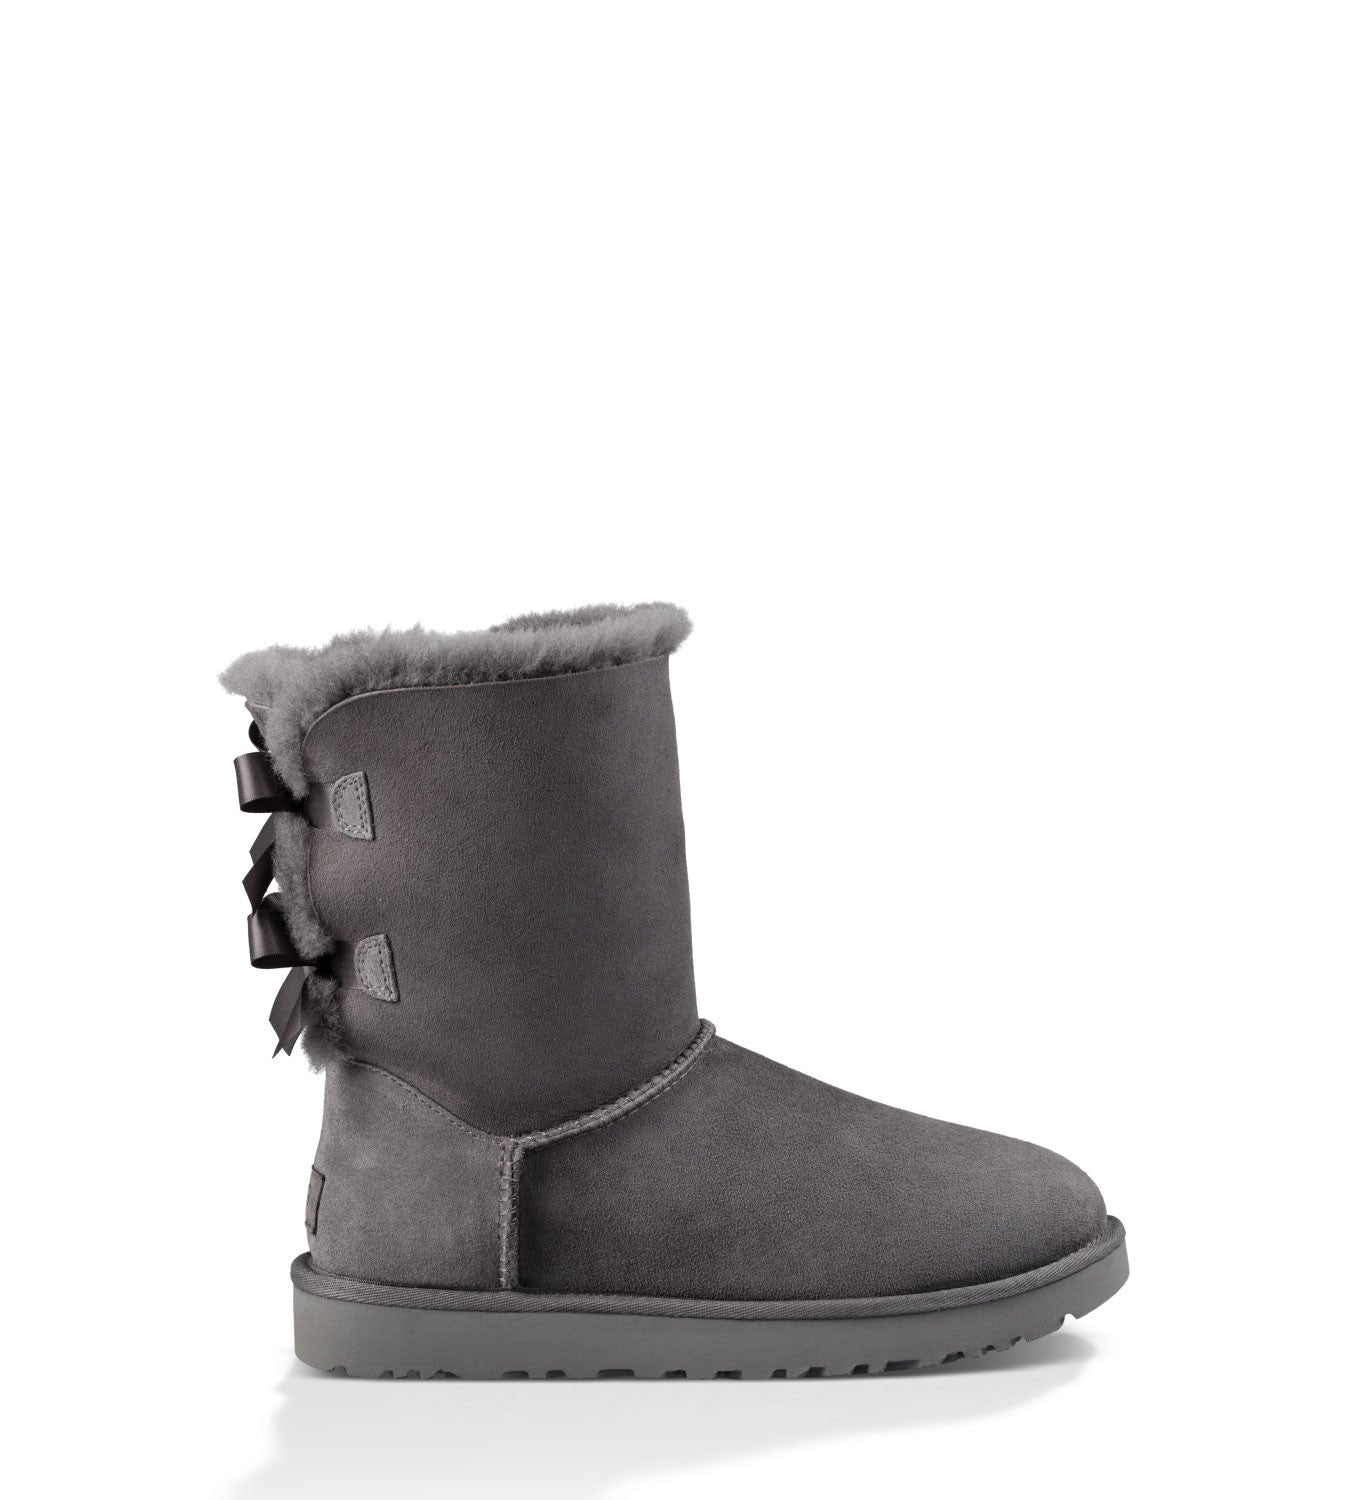 UGG Australia Women's Bailey Bow II in Grey